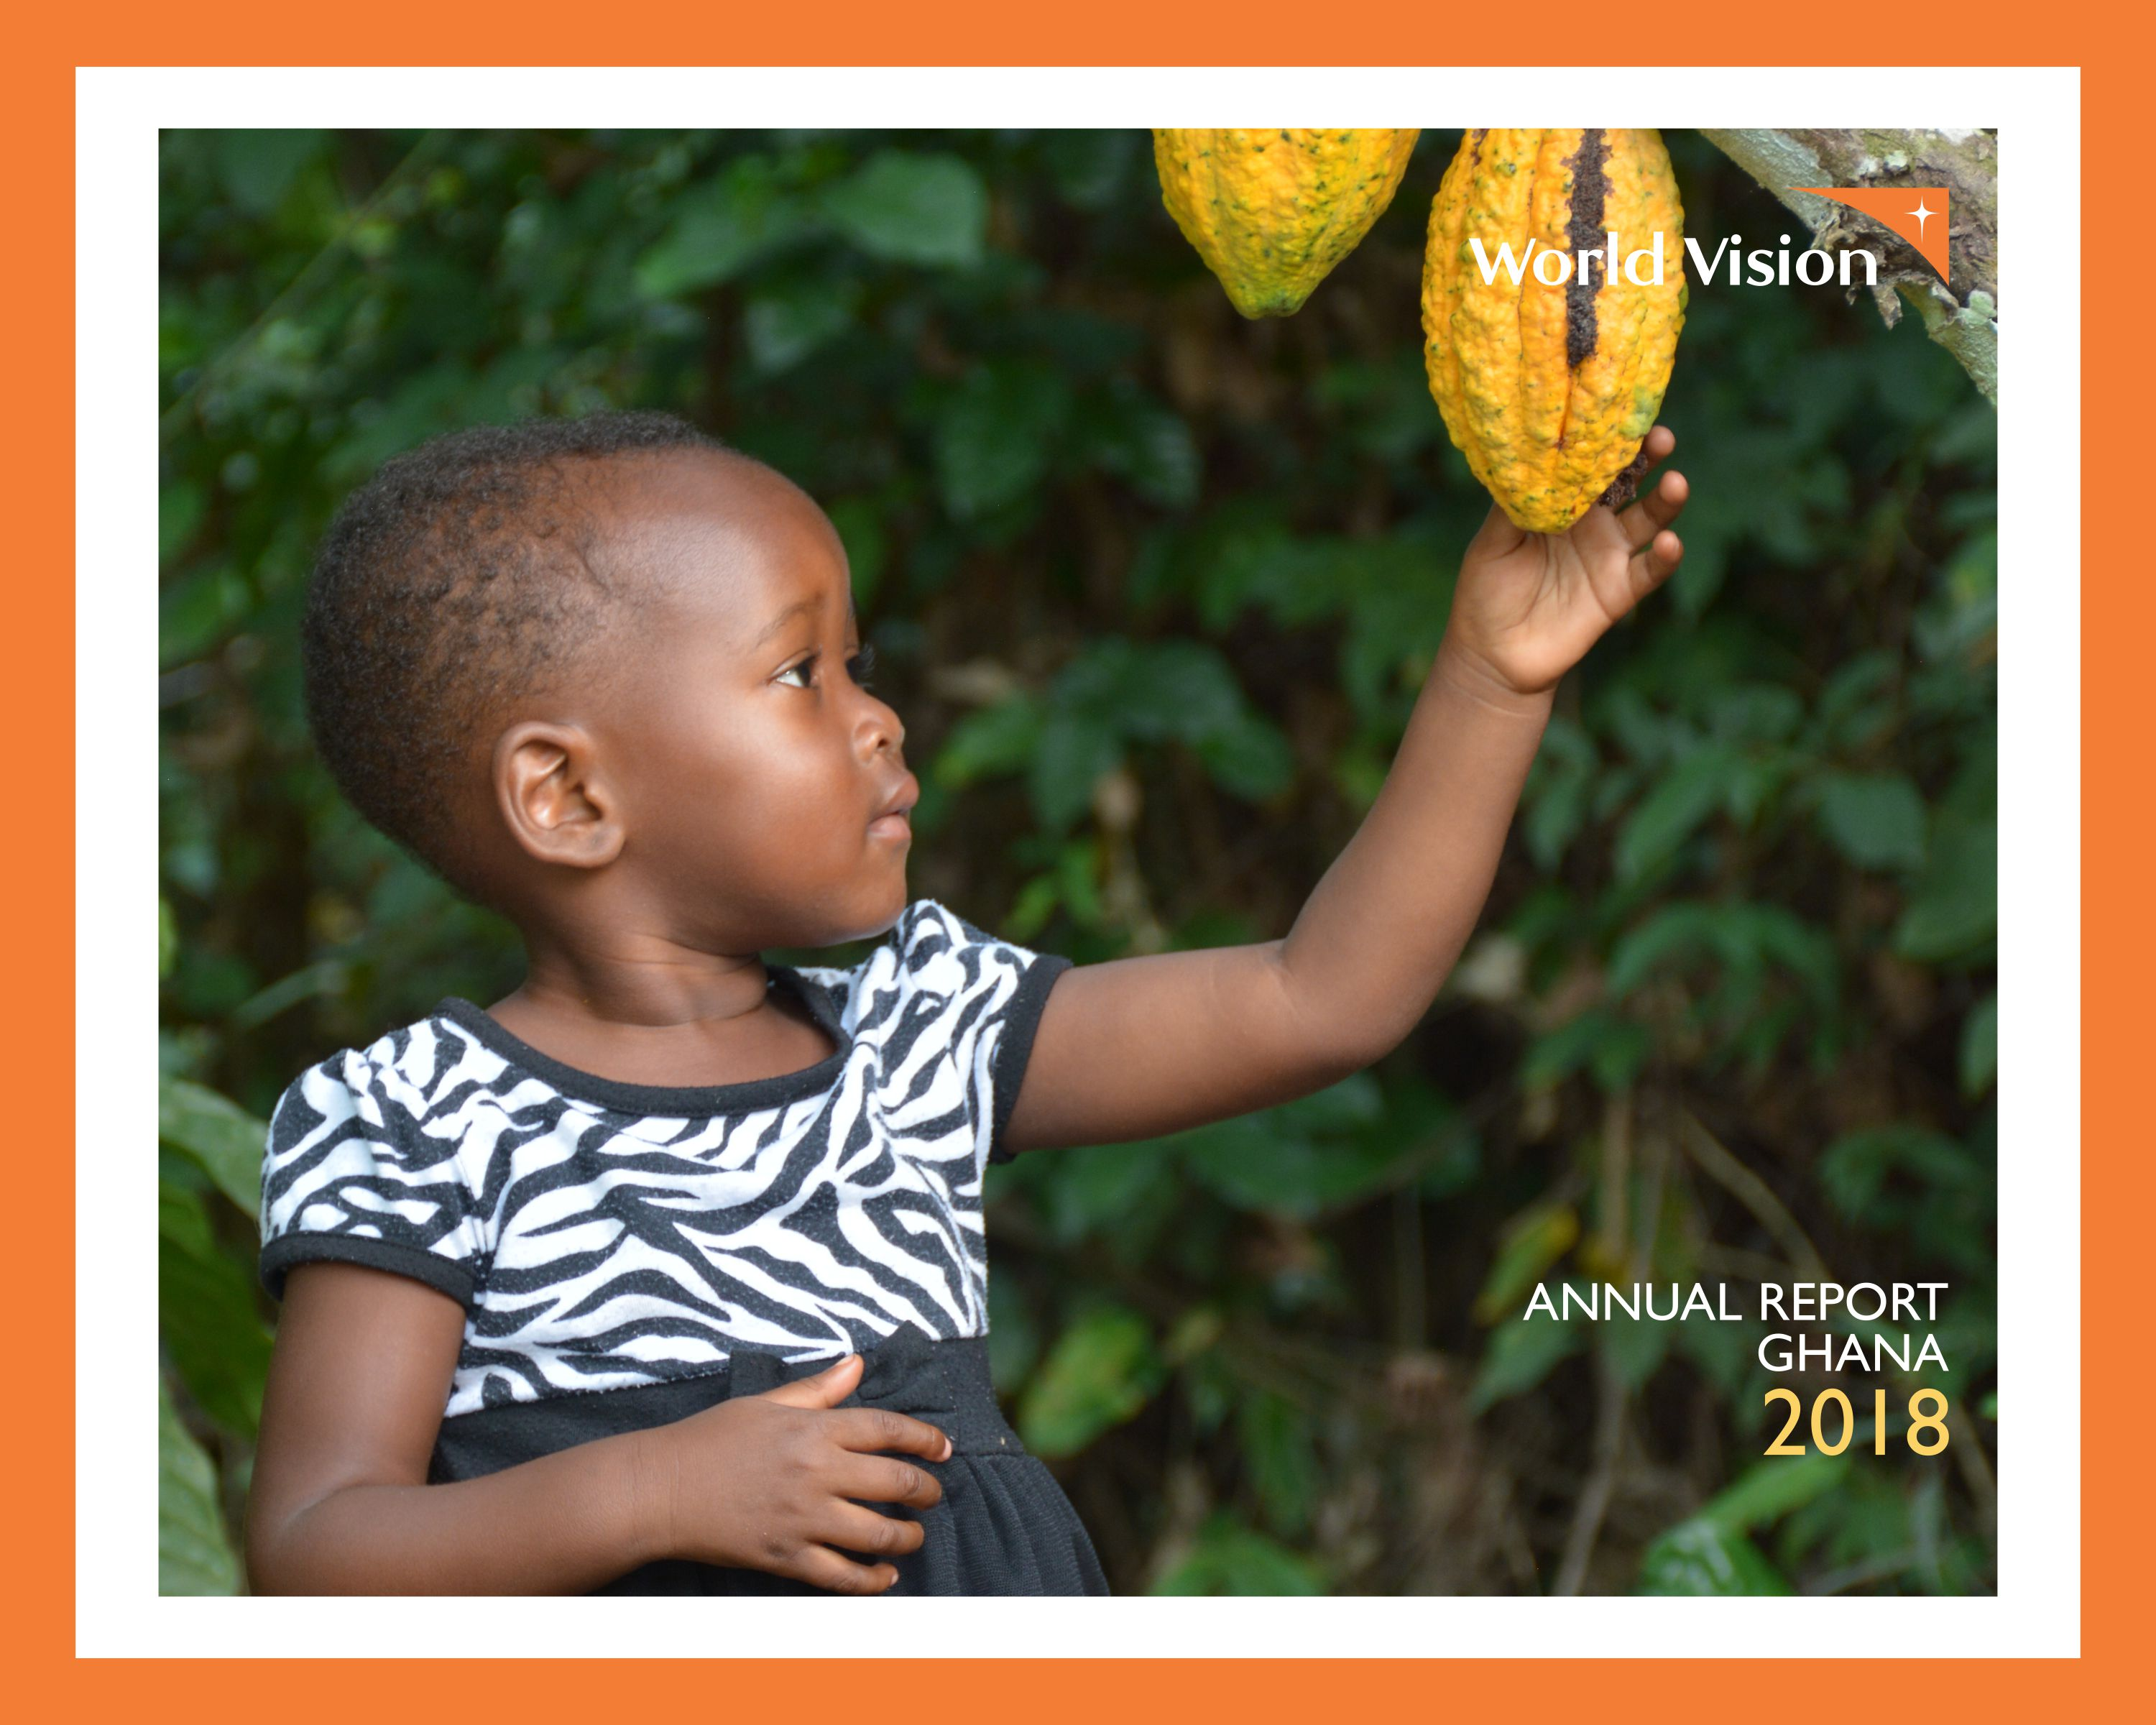 Ghana 2018 Annual Report Cover